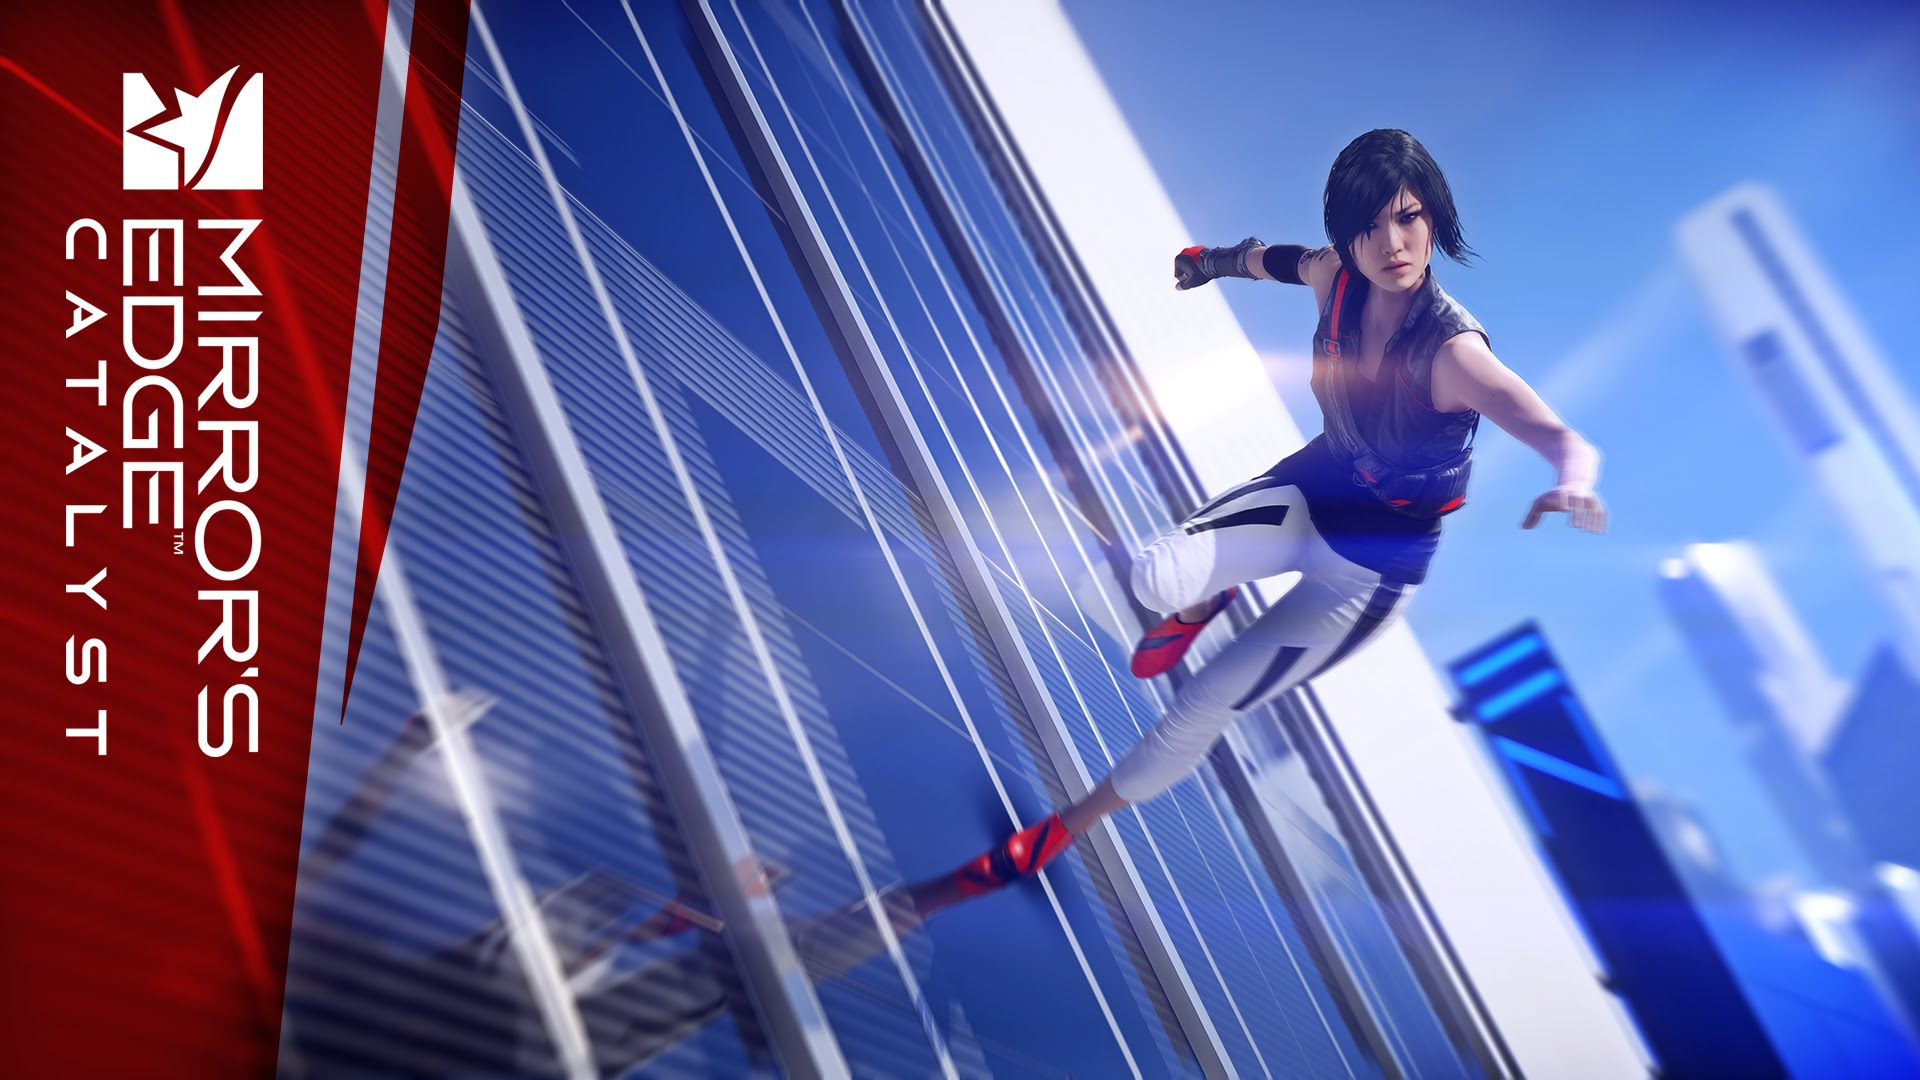 Mirror's Edge Catalyst Launch Trailer - Why We Run